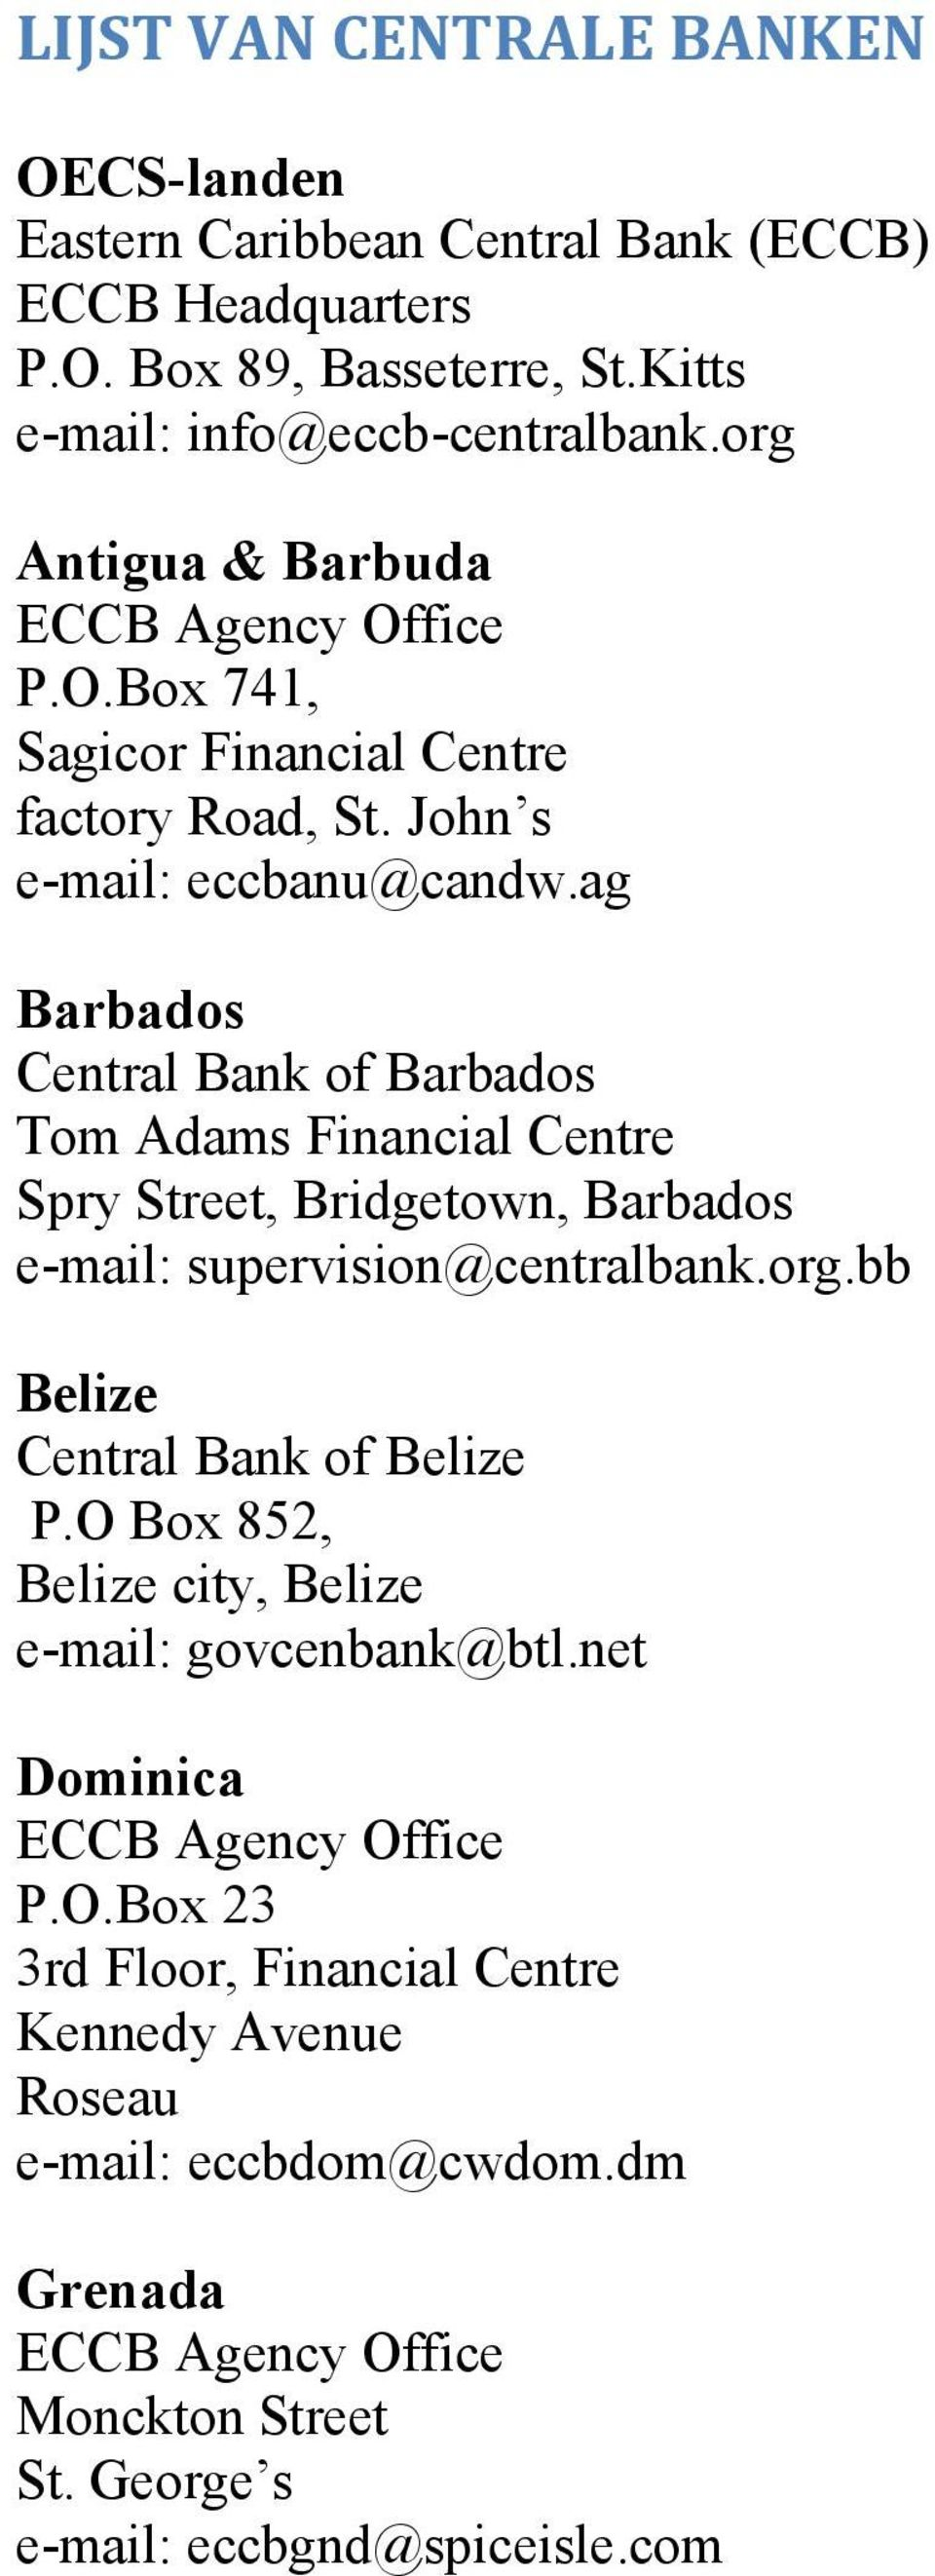 ag Barbados Central Bank of Barbados Tom Adams Financial Centre Spry Street, Bridgetown, Barbados e-mail: supervision@centralbank.org.bb Belize Central Bank of Belize P.